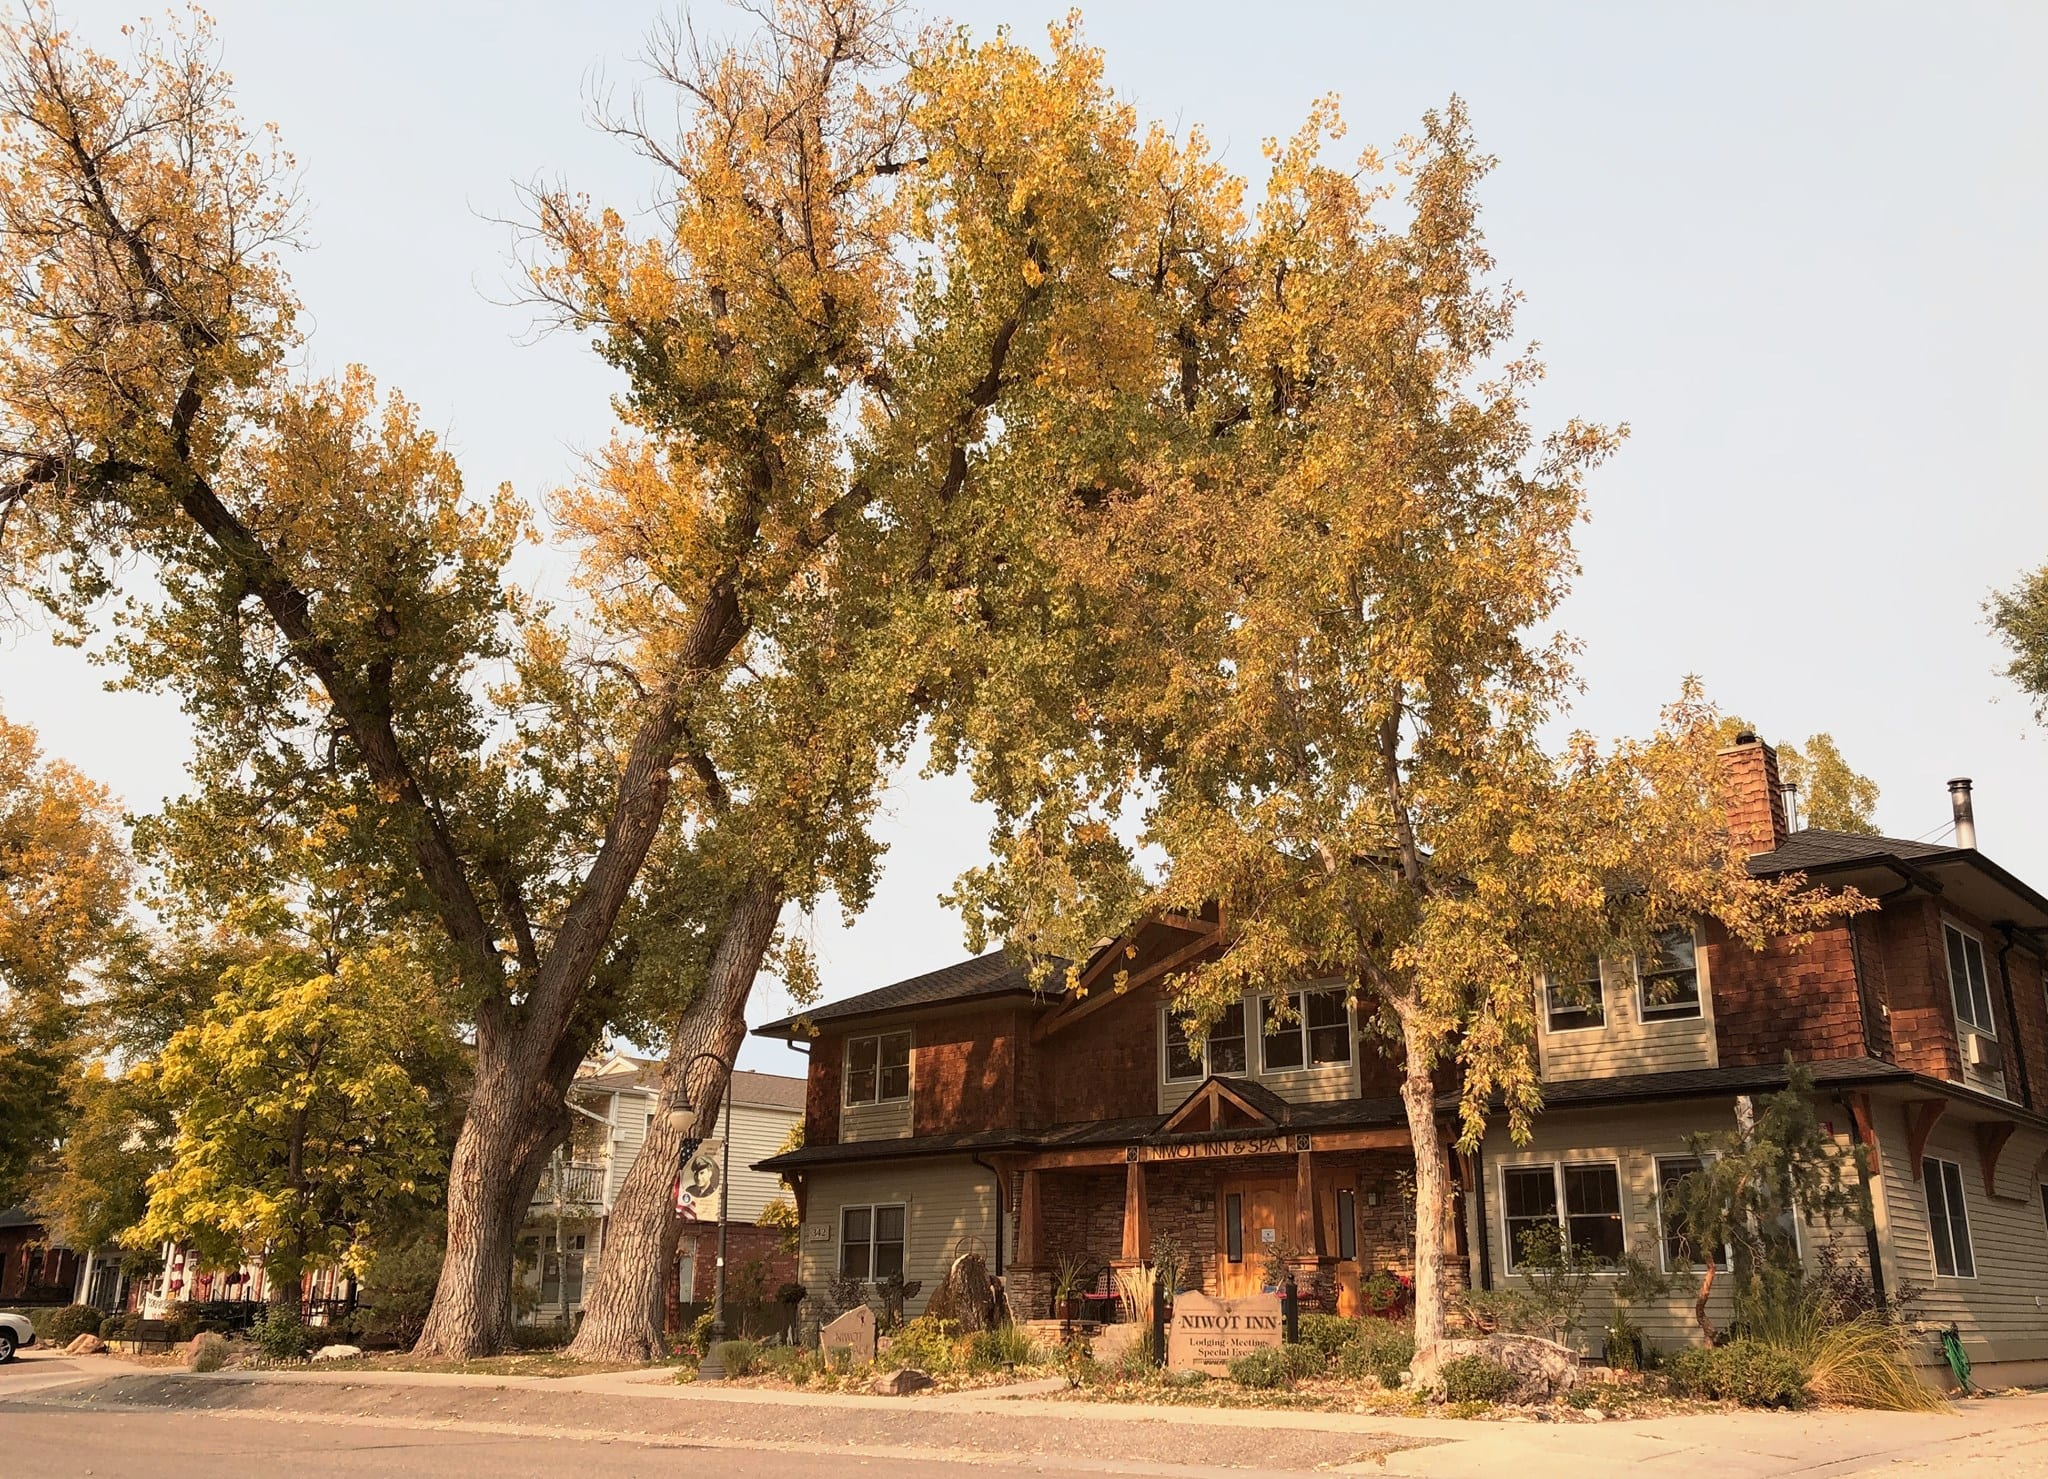 image of niwot inn and spa